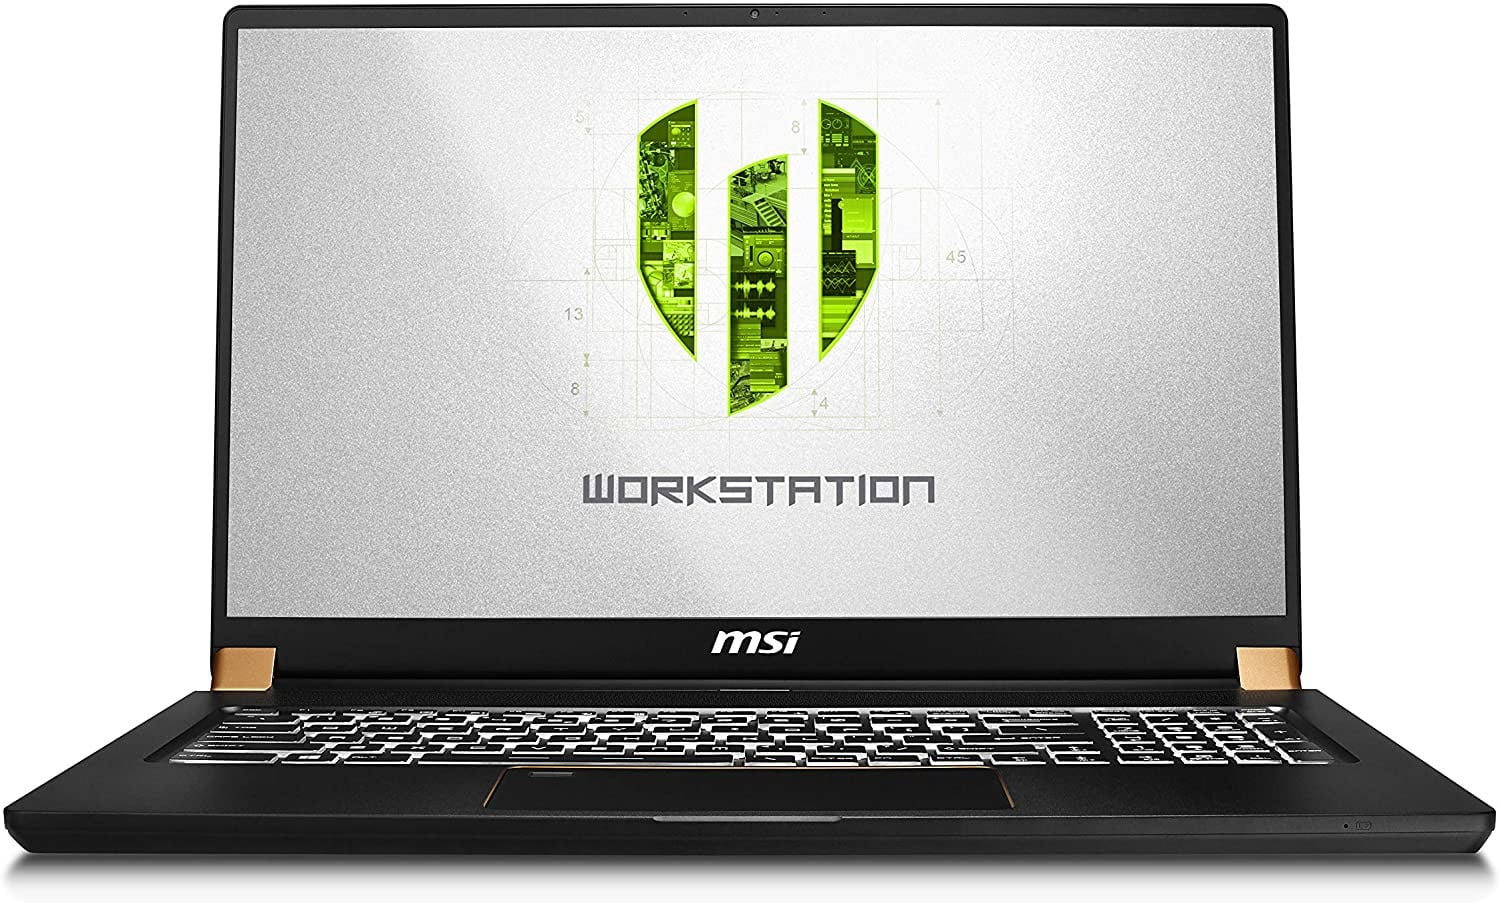 The MSI WS75 9TL-496 open with Workstation logo.